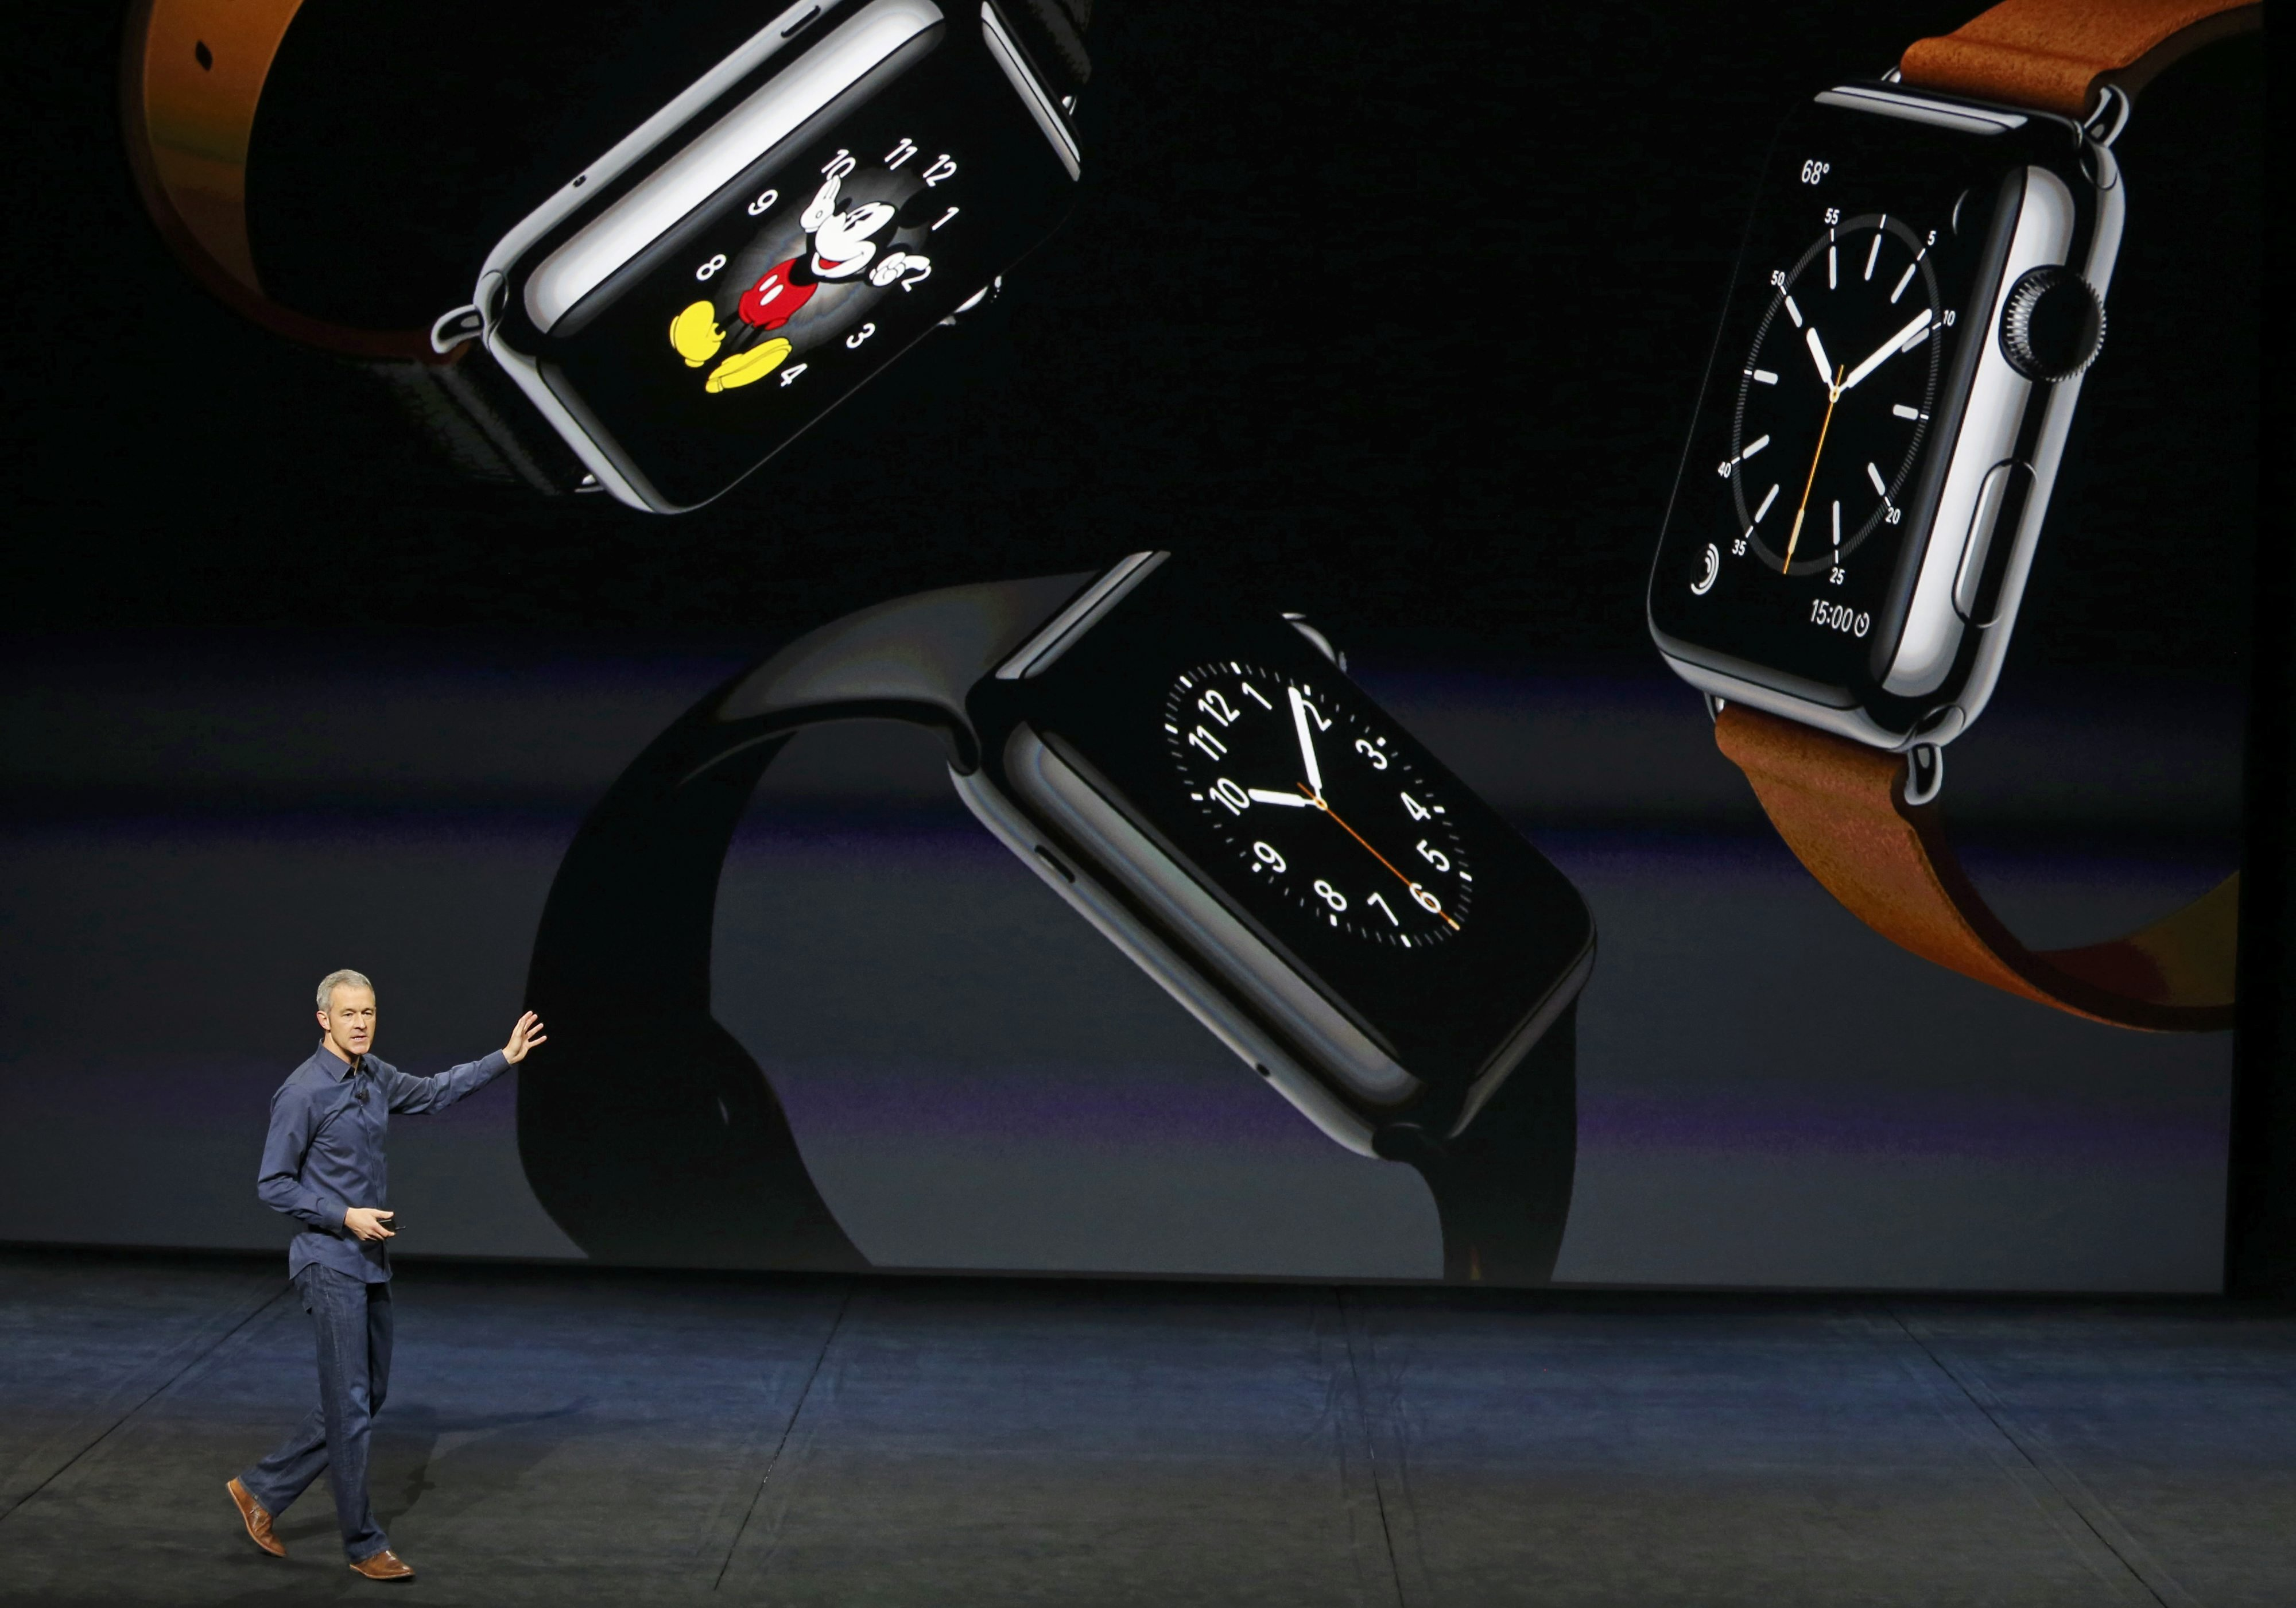 Jeff Williams Apple's senior vice president of Operations, speaks about new finishes for the Apple Watch during an Apple media event in San Francisco, on Sept. 9, 2015.